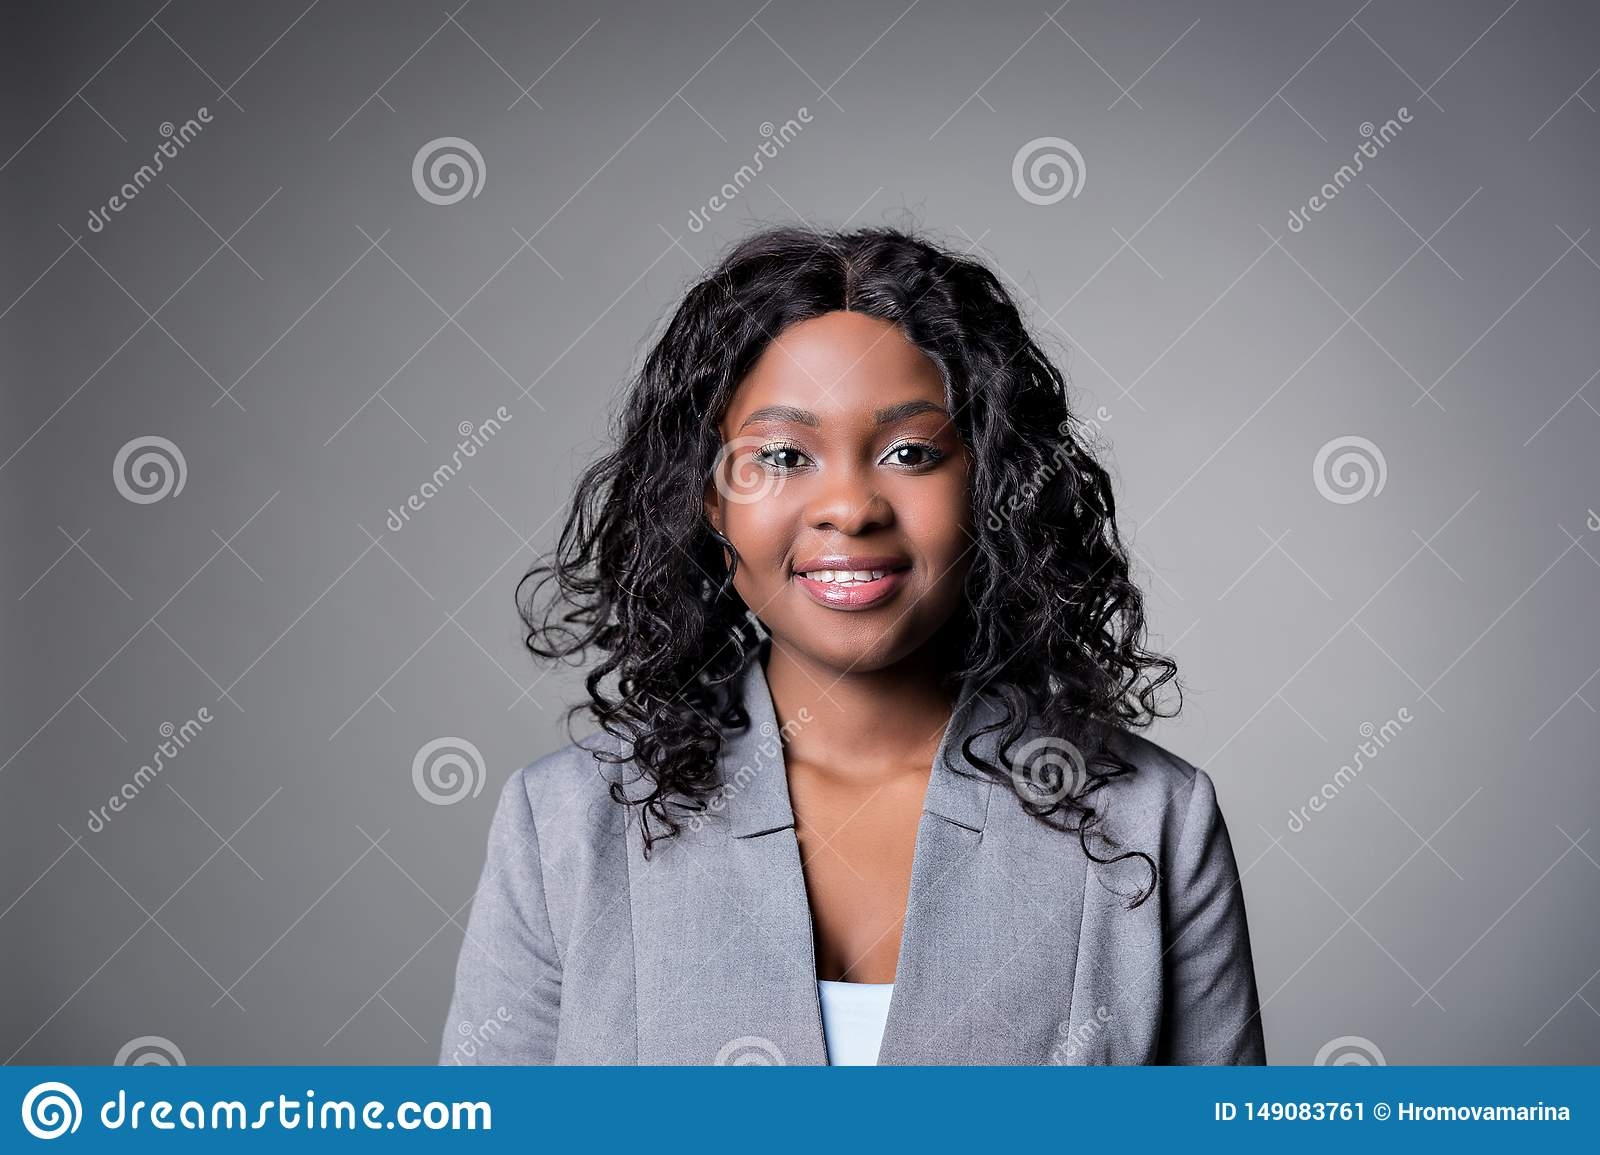 Portrait dark-skinned beautiful woman a gray jacket with dark curly hair, looking smile